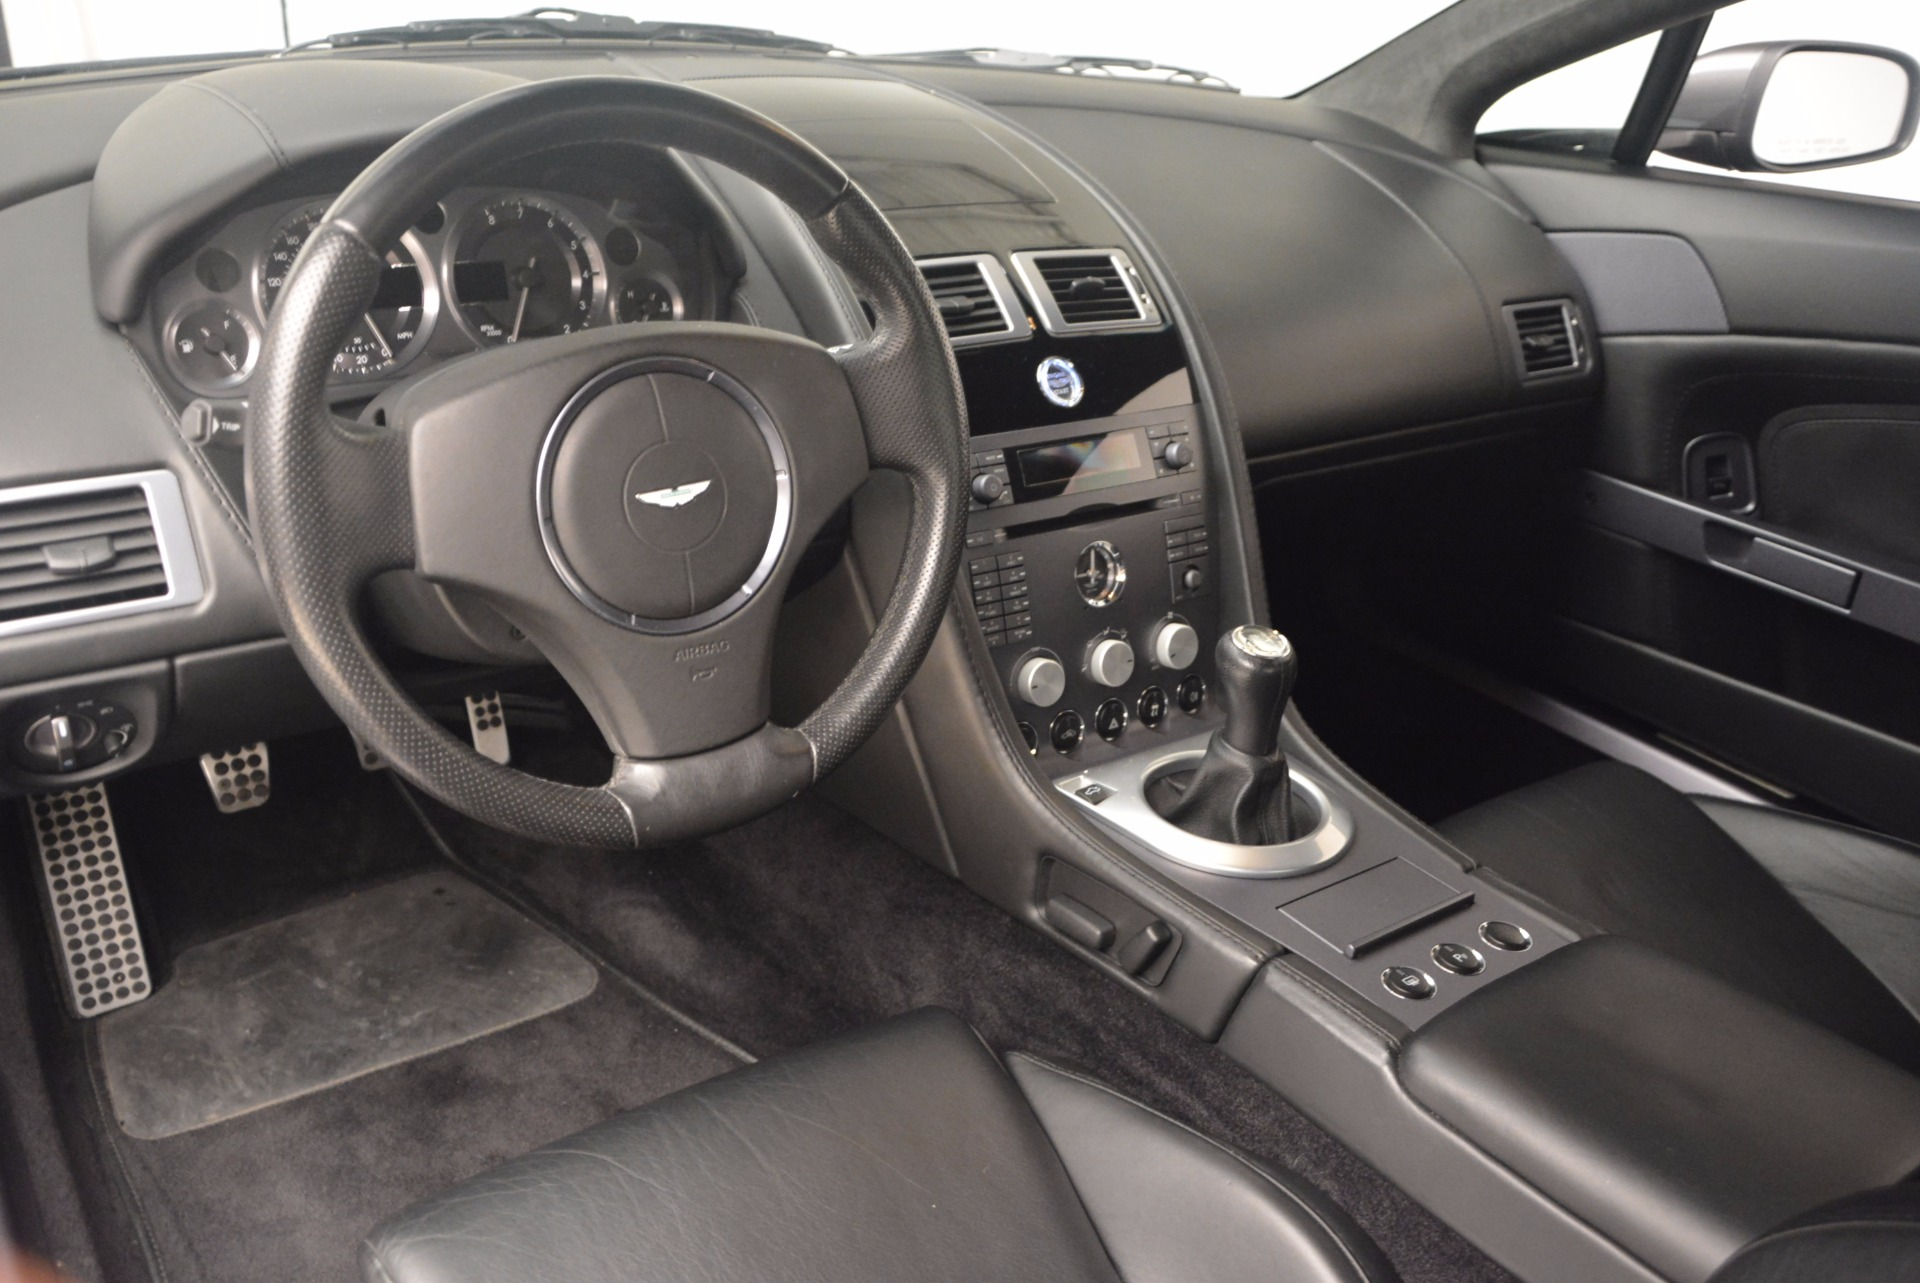 Used 2006 Aston Martin V8 Vantage Coupe  For Sale In Westport, CT 1180_p14